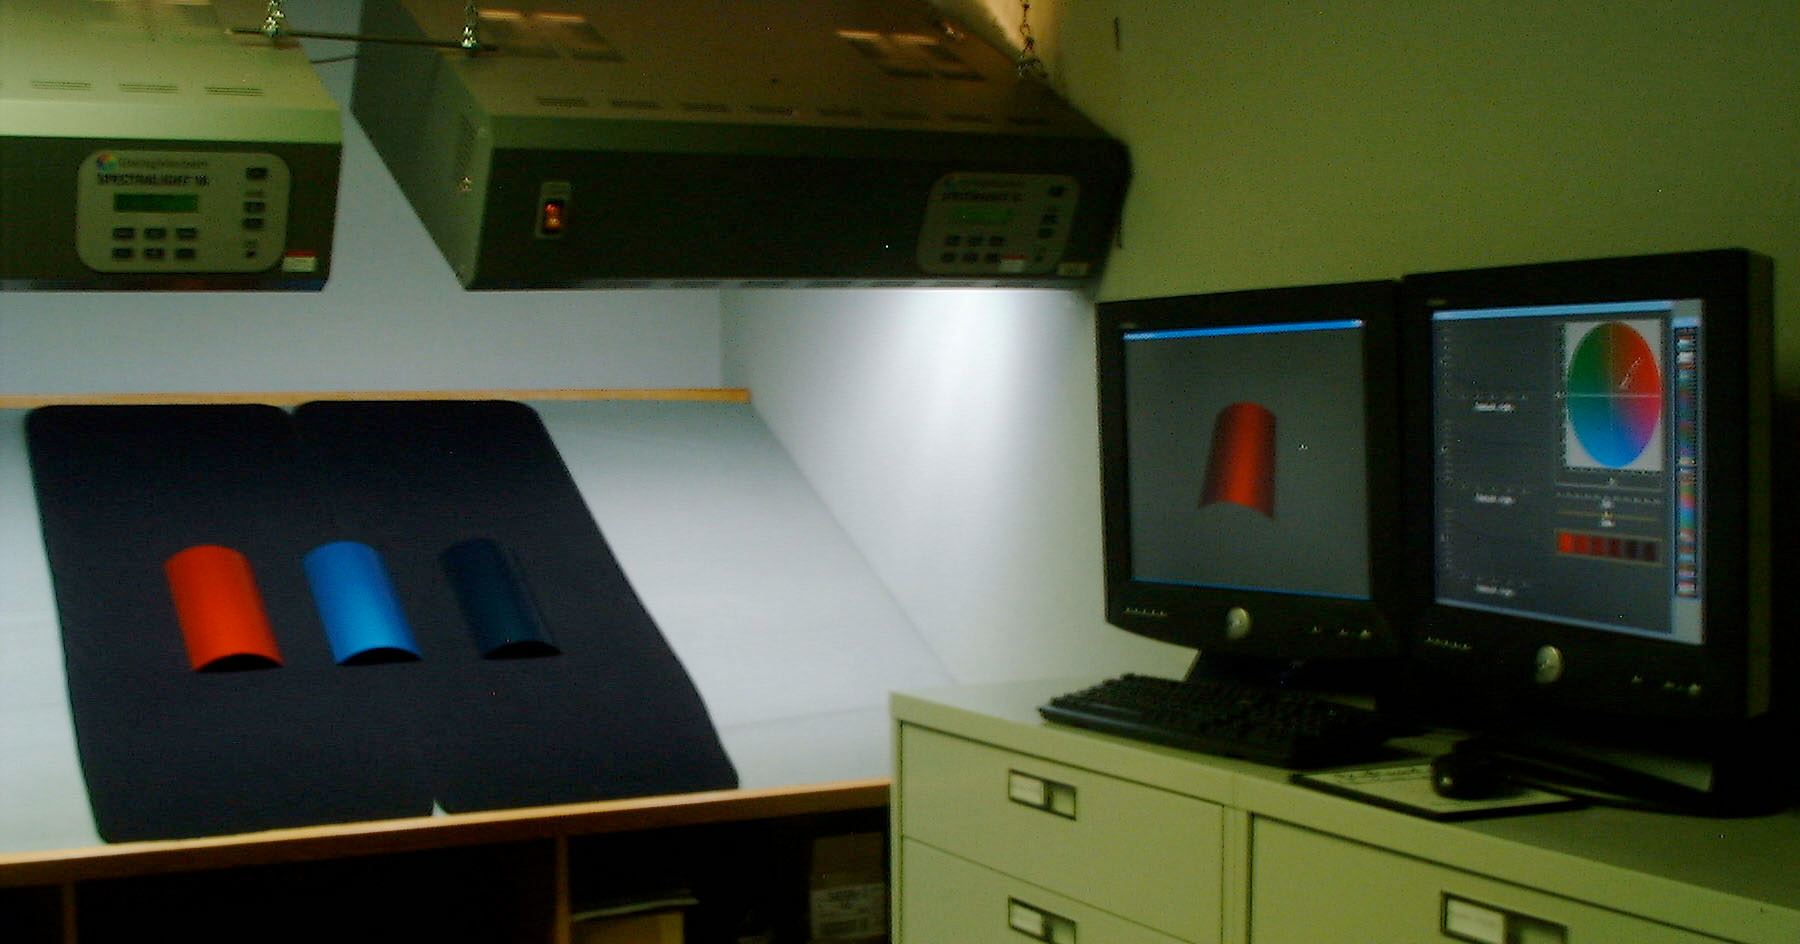 Controlled Lighting for Comparison between Computer Display and manufactured paint prototypes used a SpectraLight Color temperate and spectrum controlled lamp